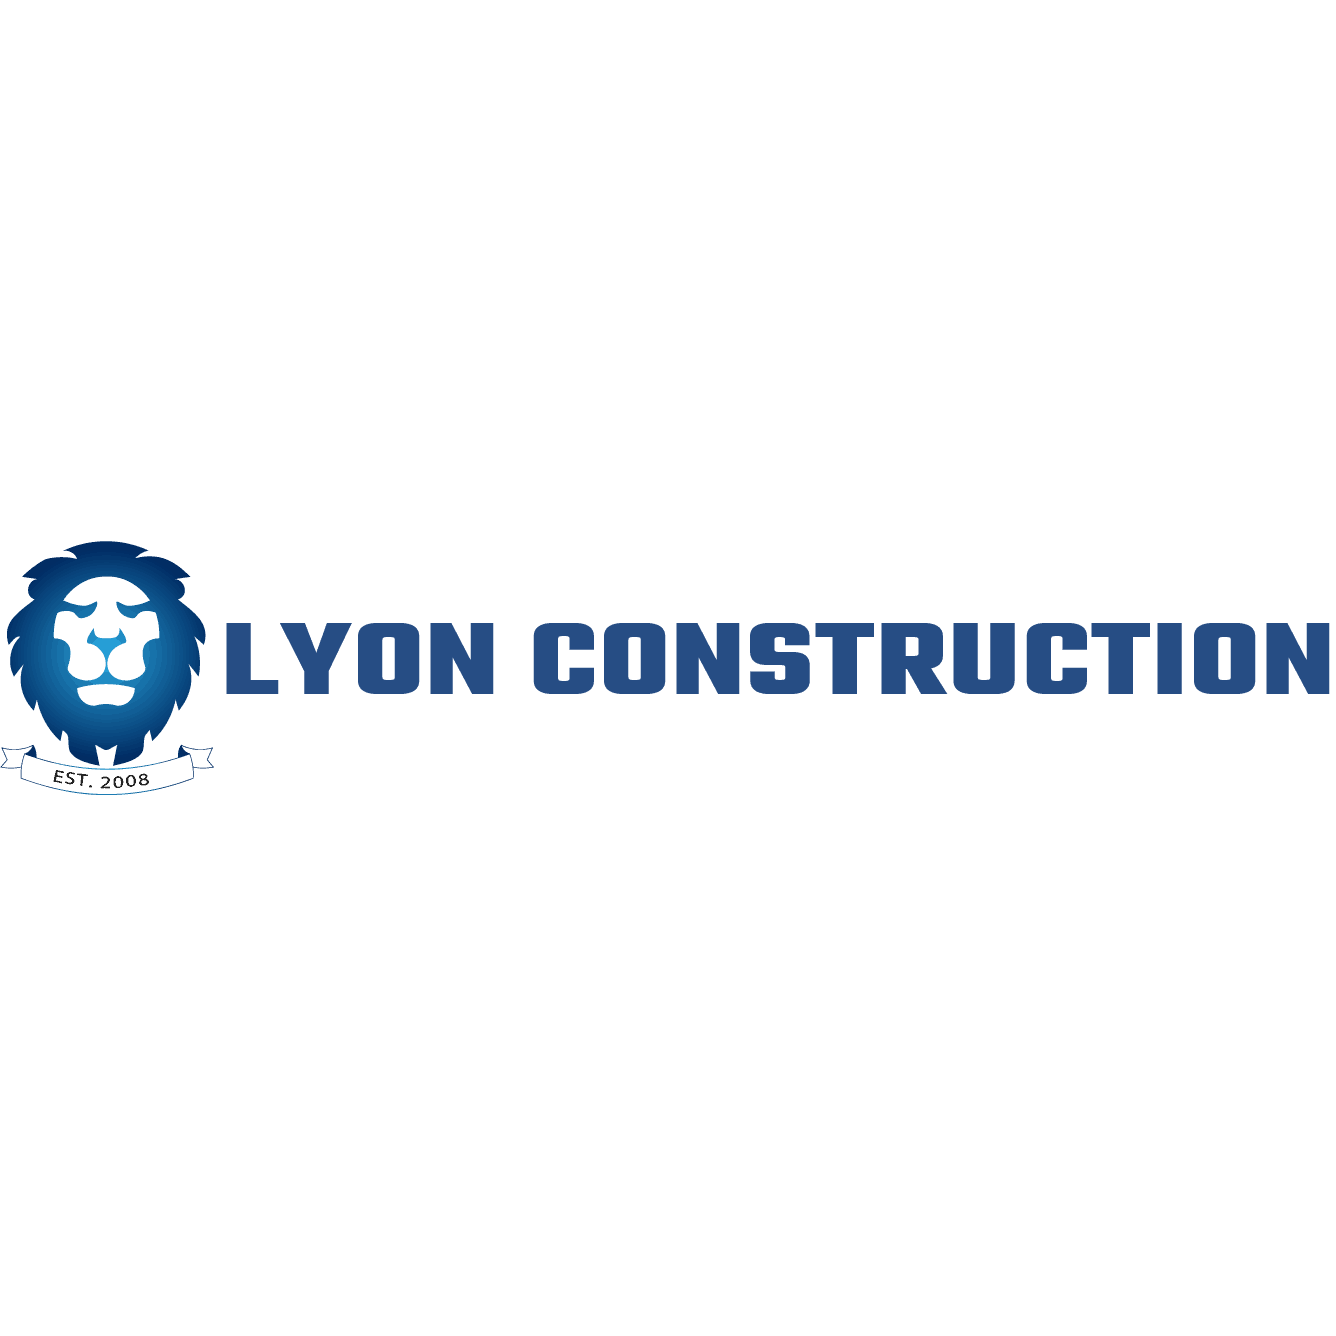 Lyon Construction